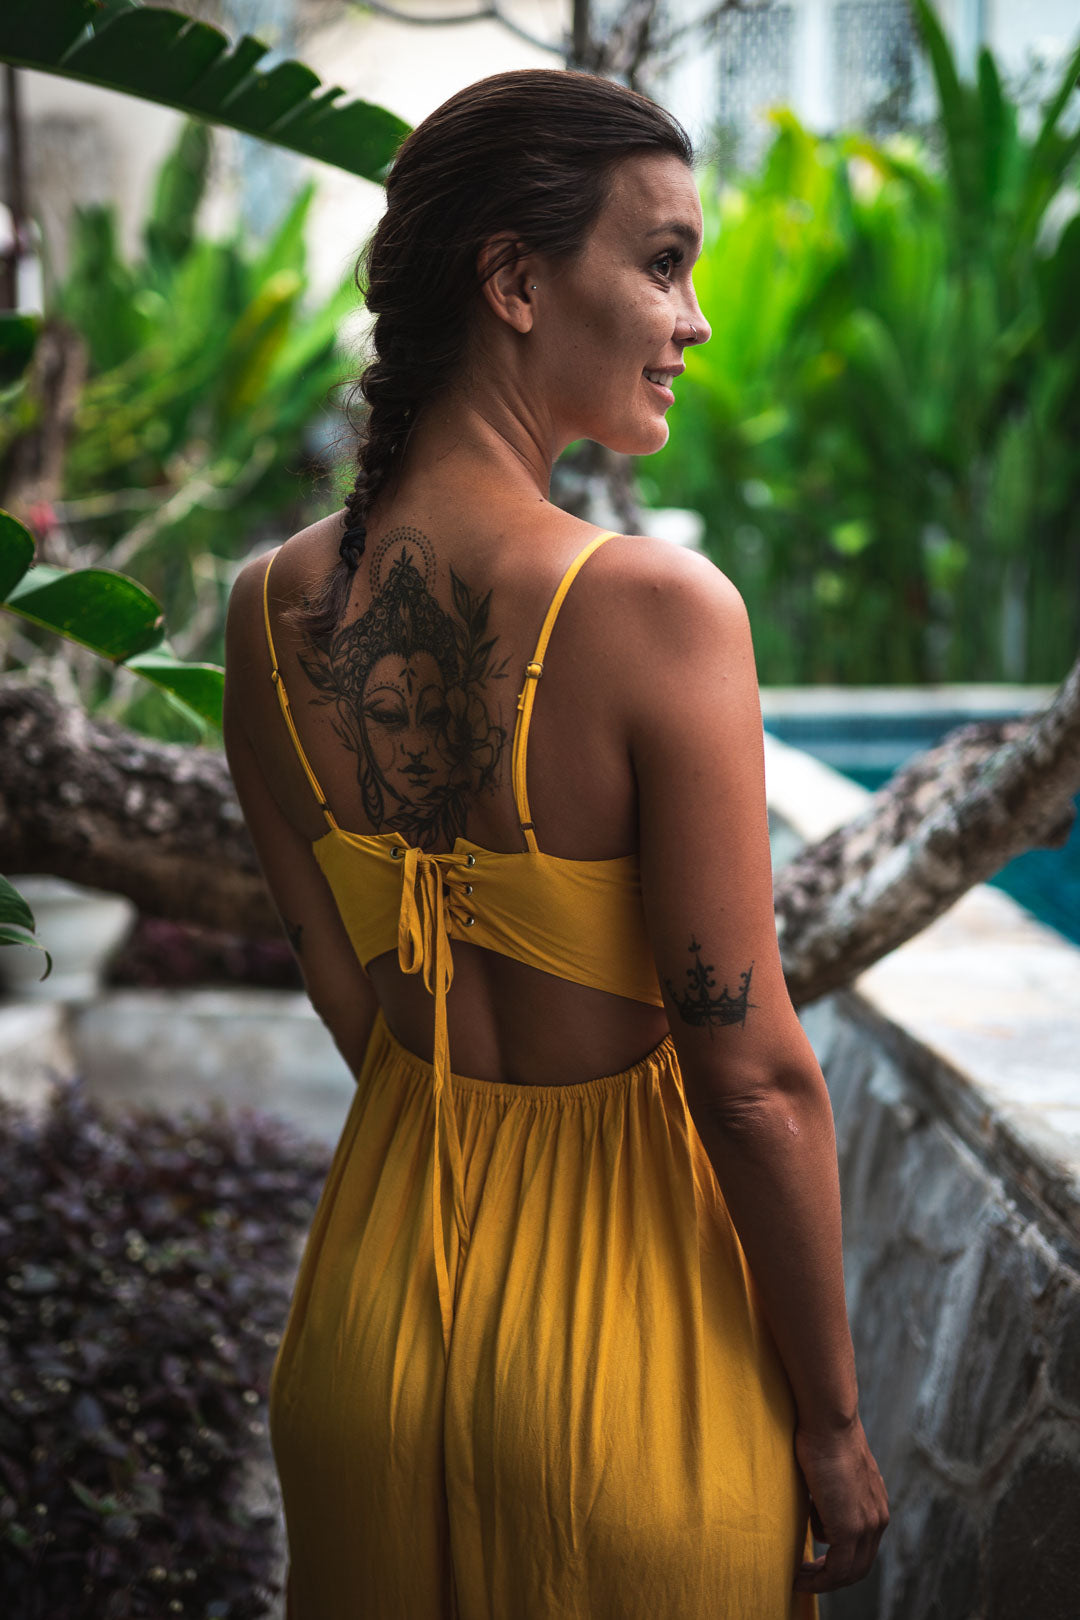 Brunette and tattooed woman in yellow dress near swimming pool